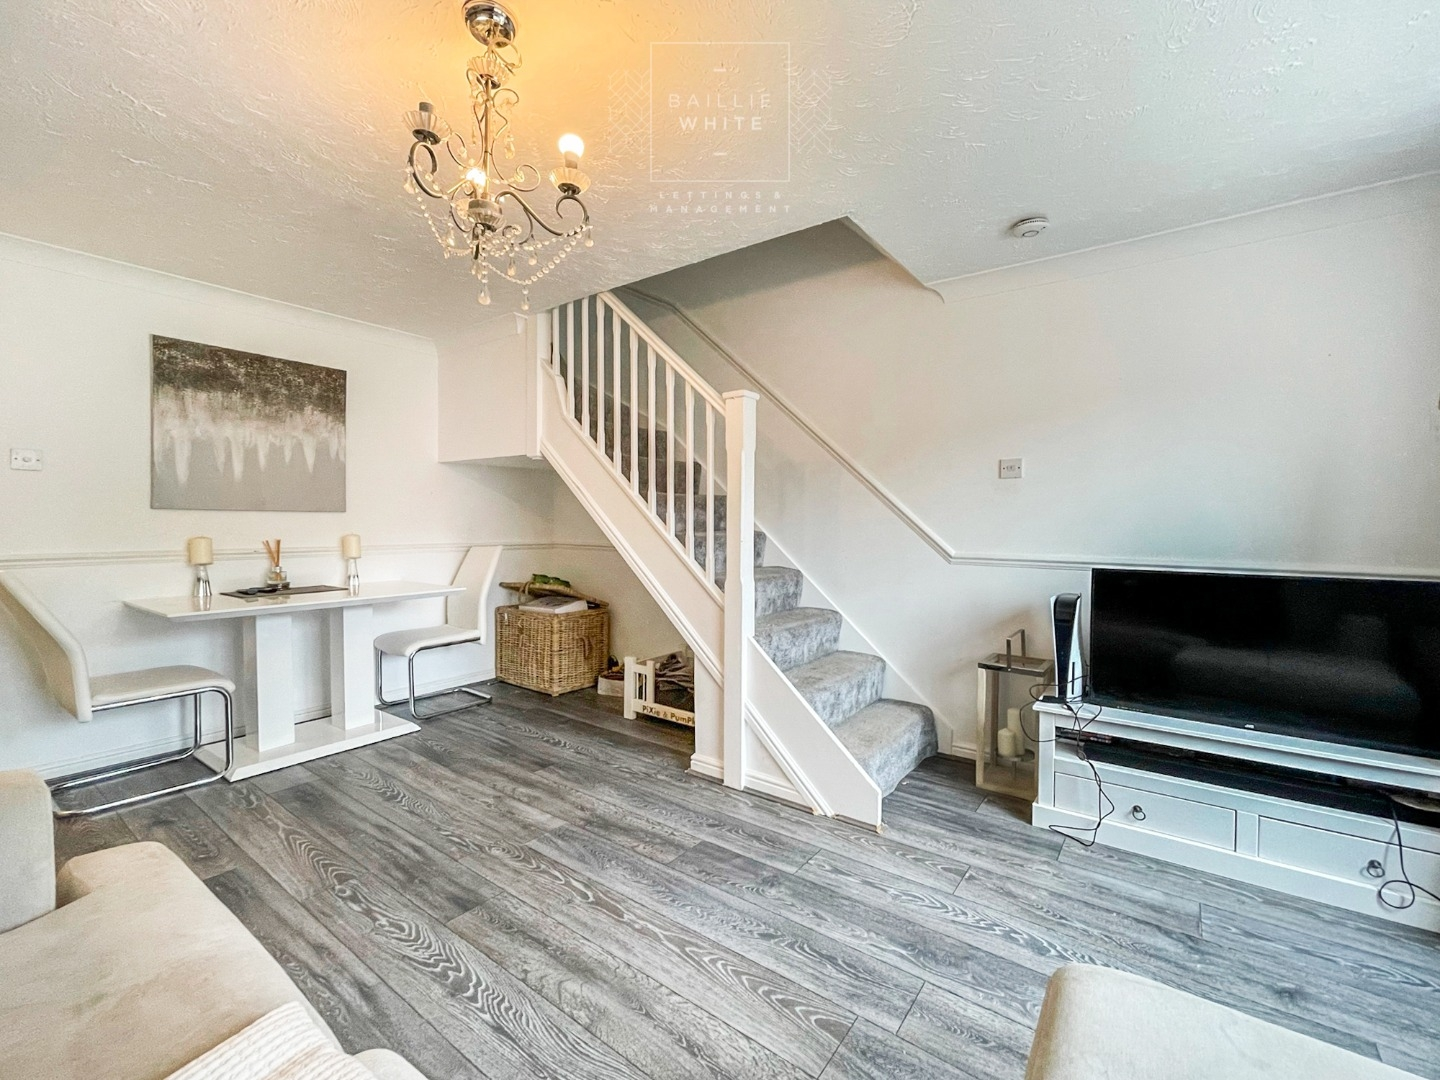 2 bed house to rent in Northampton Grove, Langdon Hills - Property Image 1